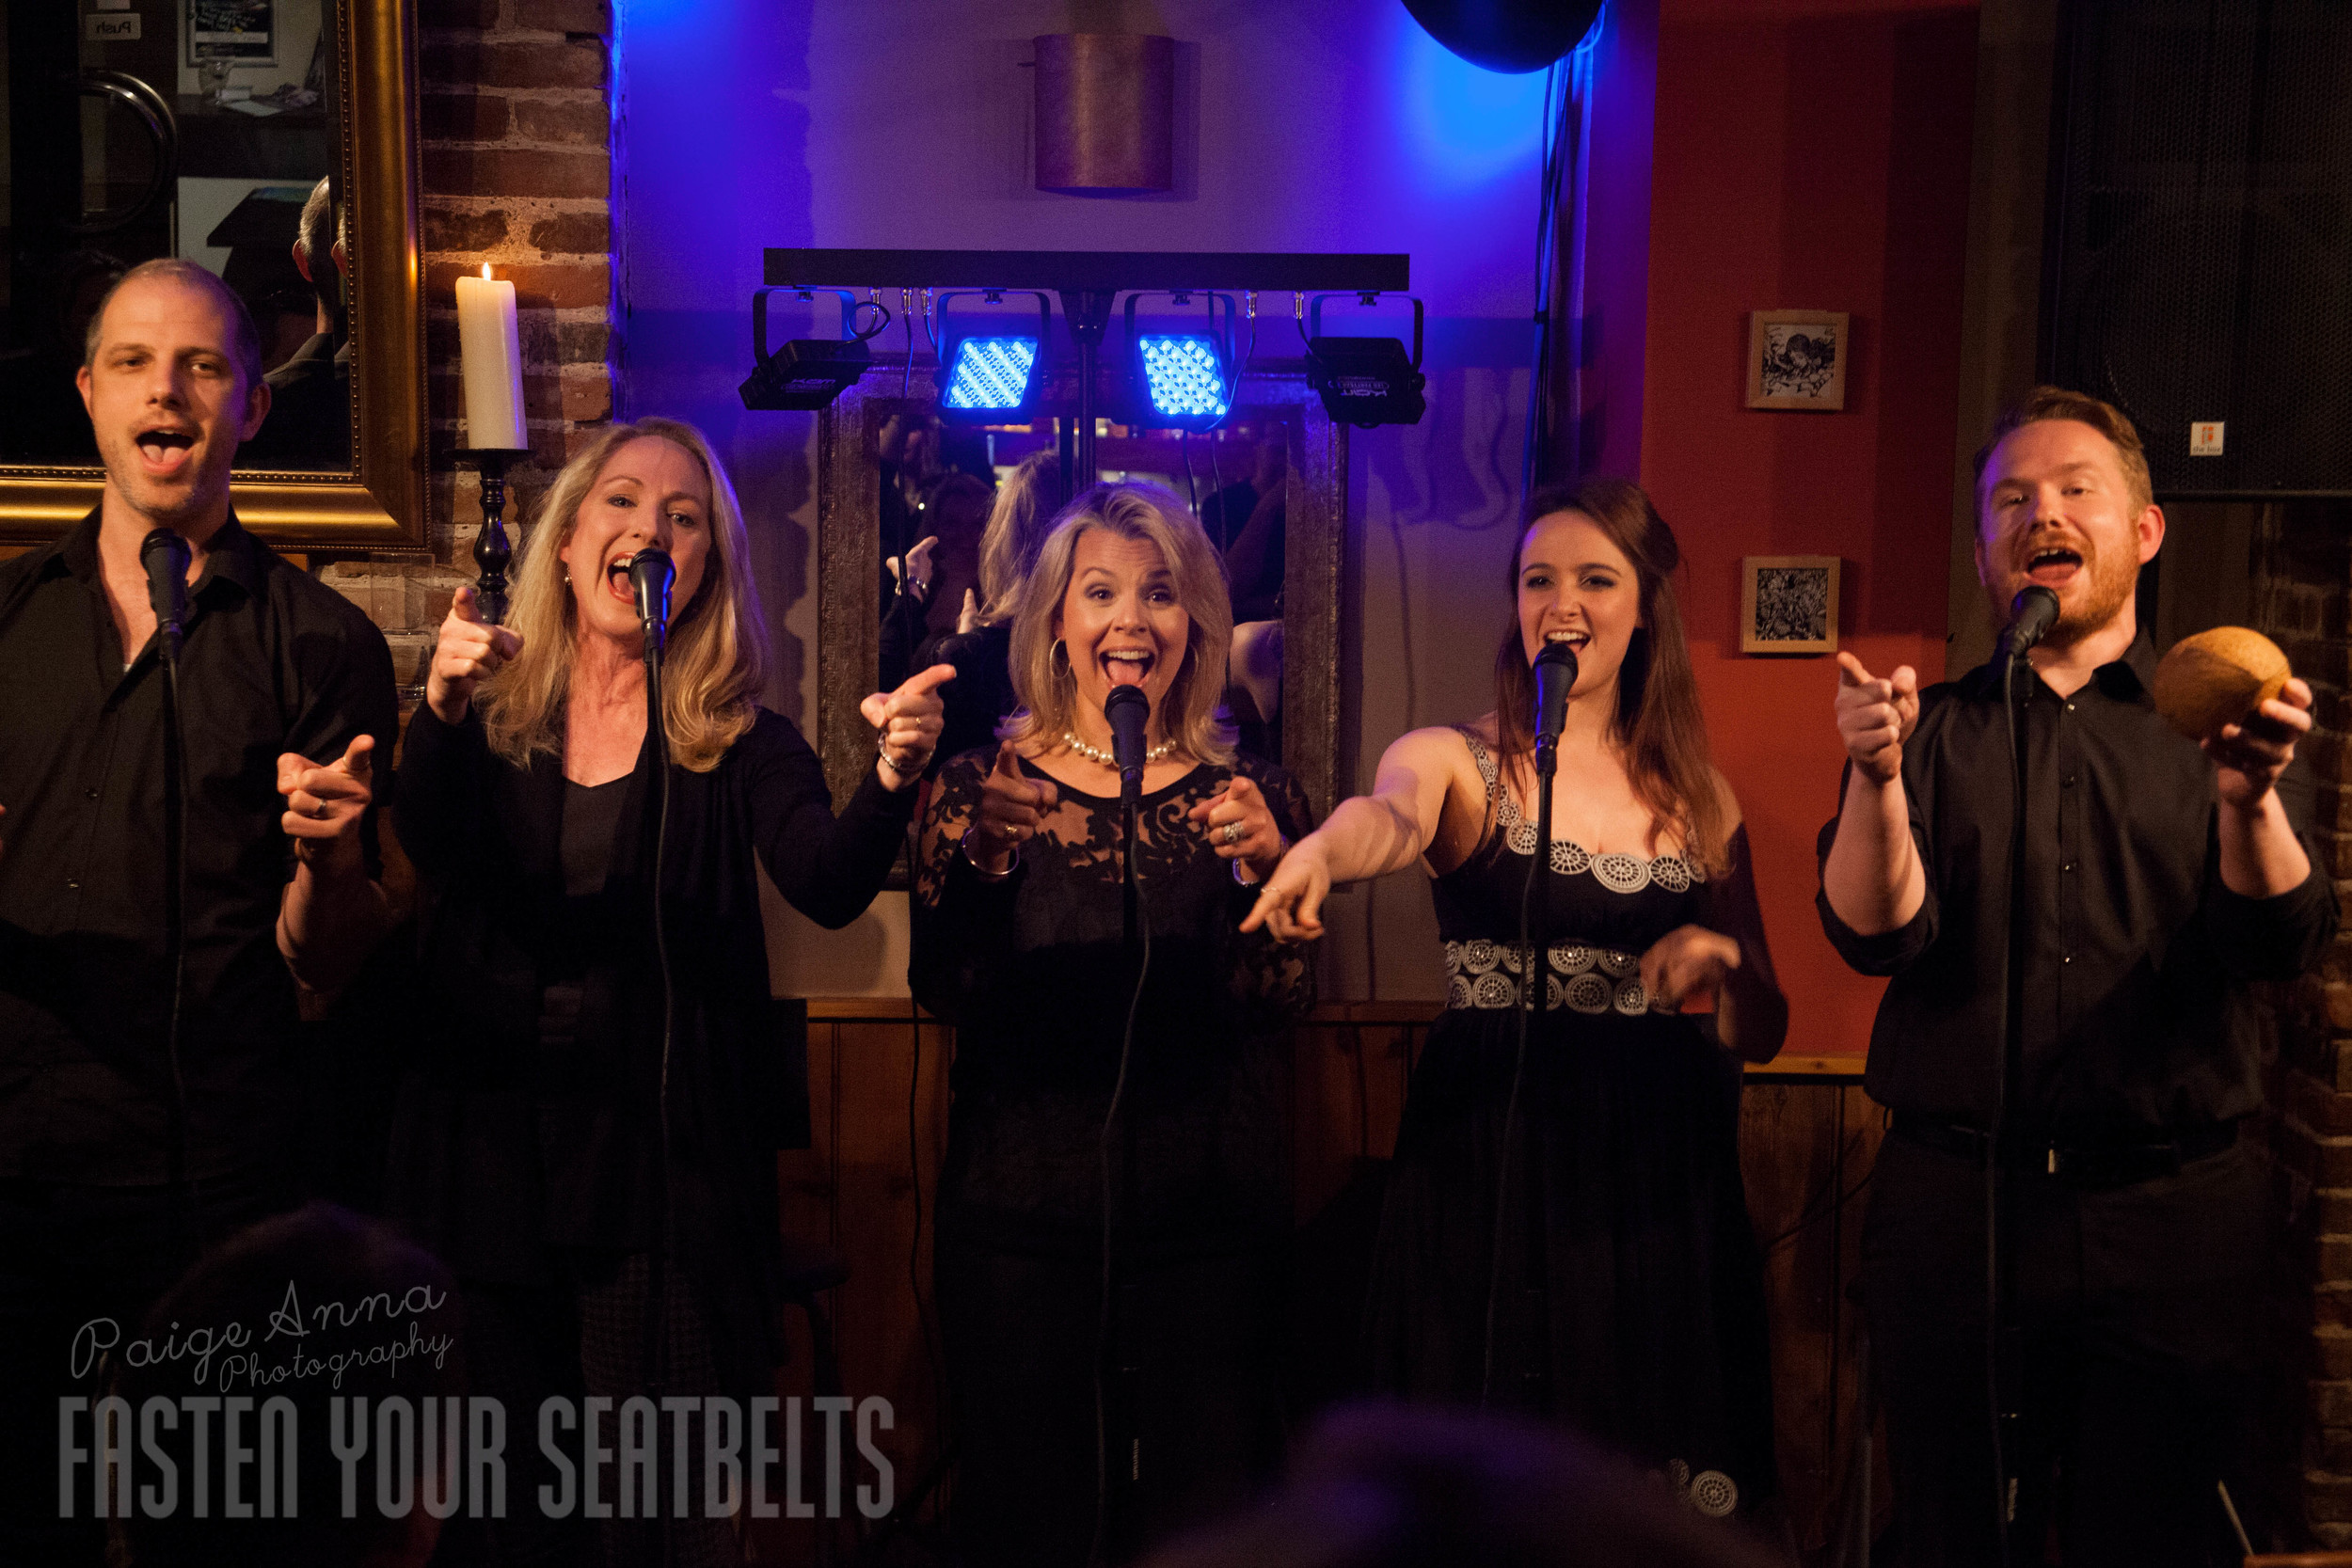 'Thataway' -THE SONGS OF KANDER & EBB 2015 with Nate Rogers'Branch, Pippa Winslow, Maureen Rejali, Stephanie Napier and Elliott Griffiths